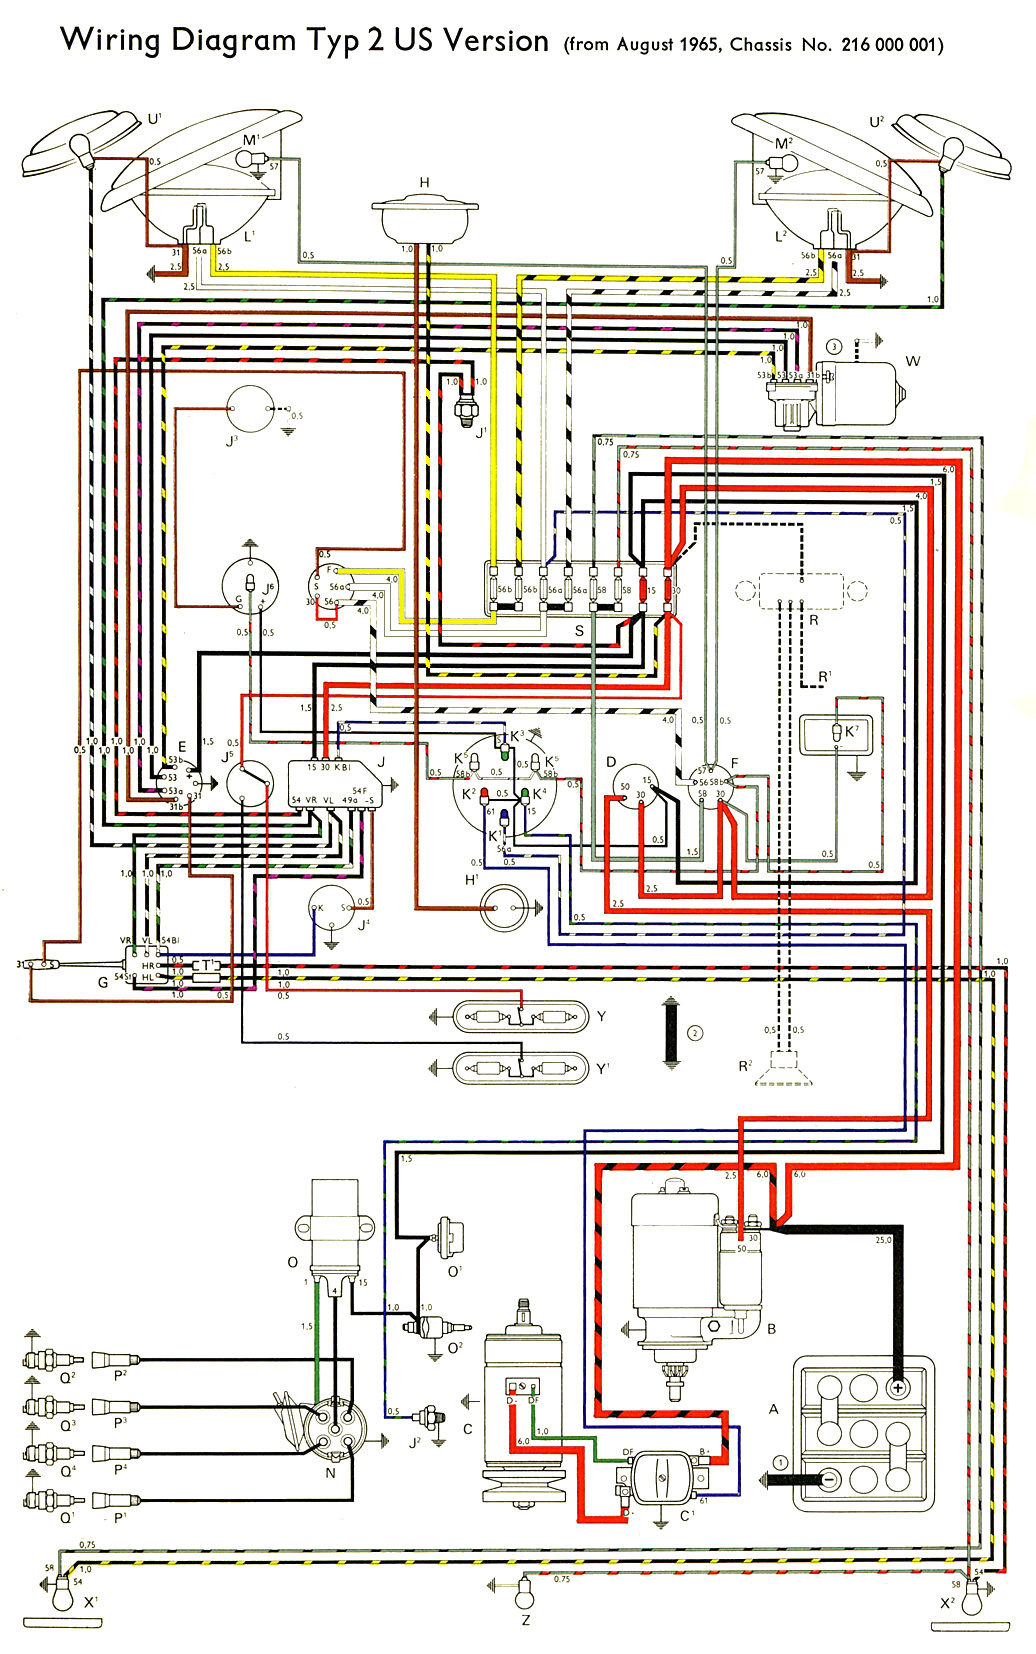 1974 vw bus wiring diagram 1999 ford f150 4 2 starter 1976 volkswagen beetle engine autos post